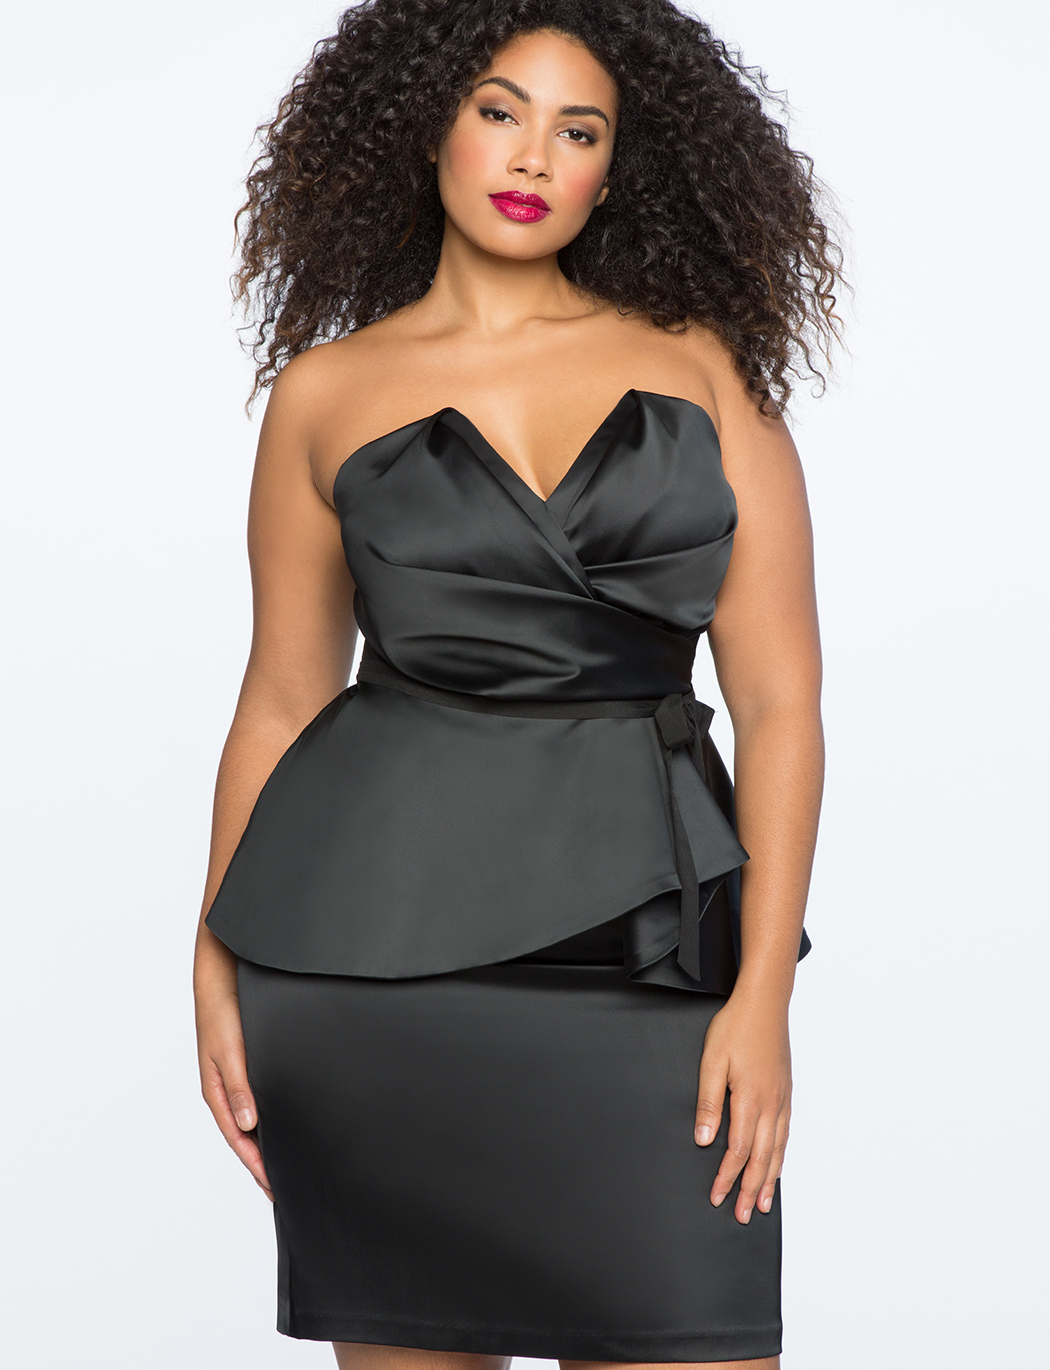 Draped Bodice Peplum Dress | Women\'s Plus Size Dresses | ELOQUII